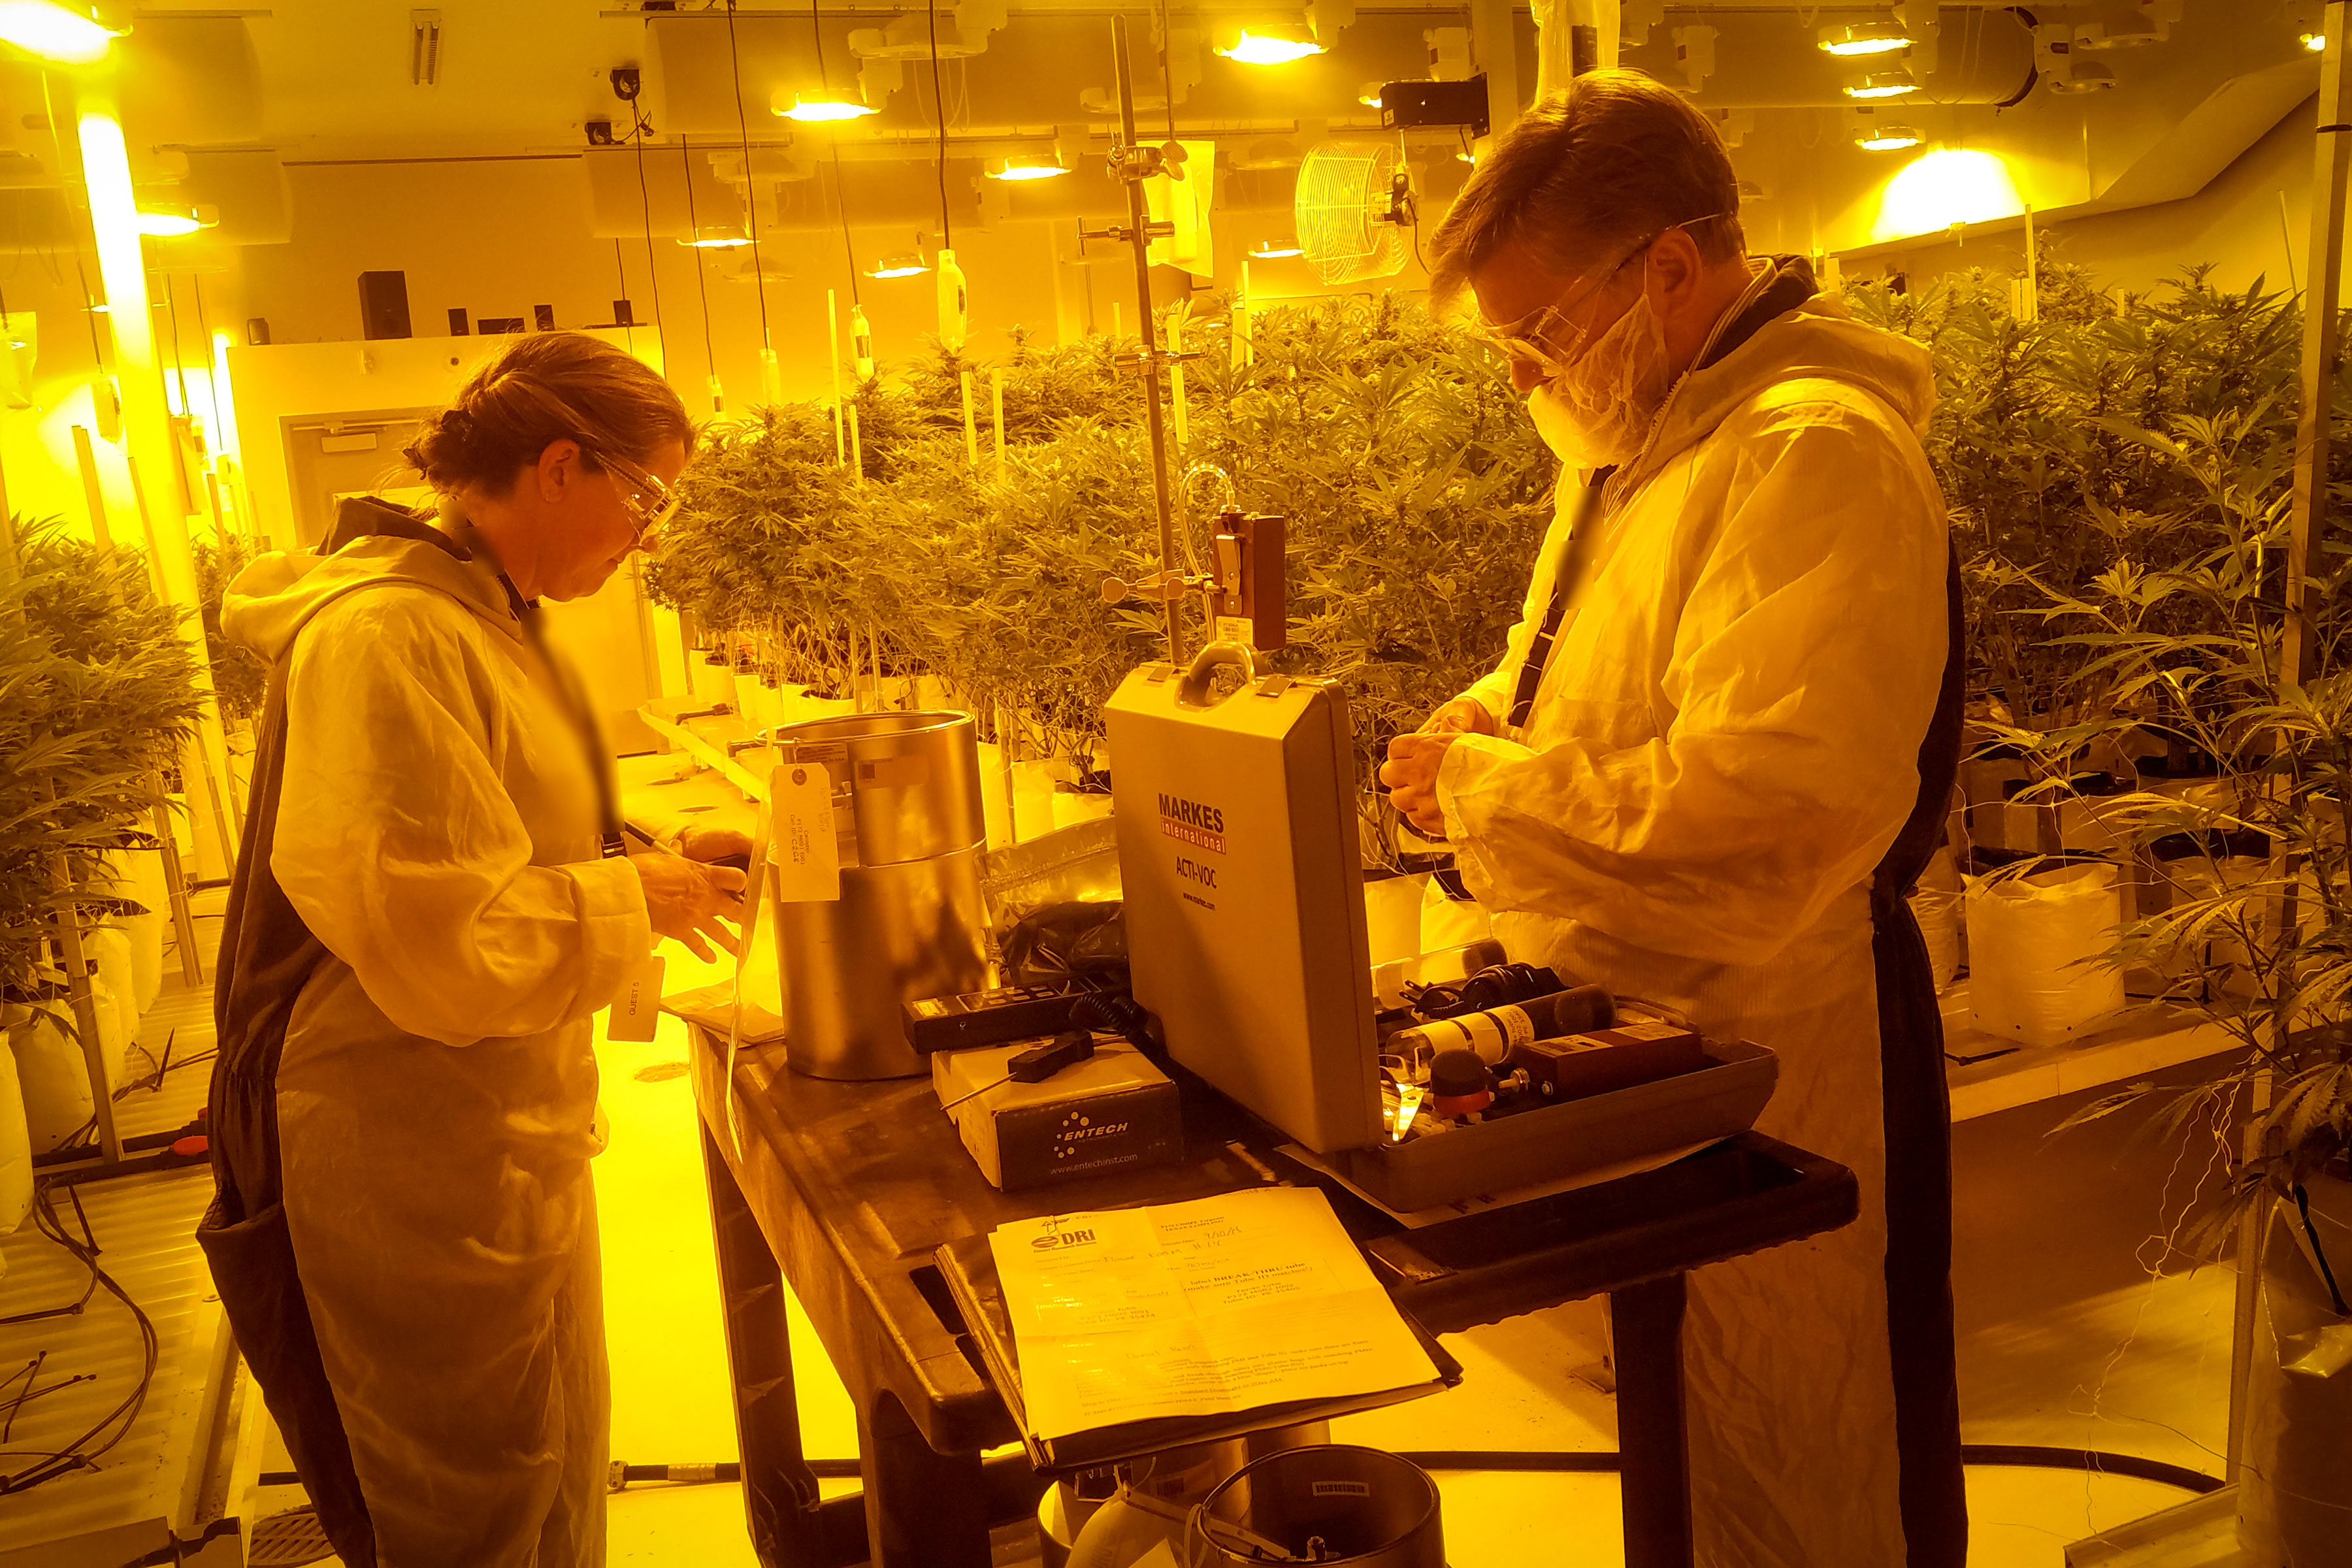 Colorado Department of Public Health and Environment researchers Alicia Frazier, Kaitlin Urso and Daniel Bon, collecting air samples from a drying room in a marijuana grow house.